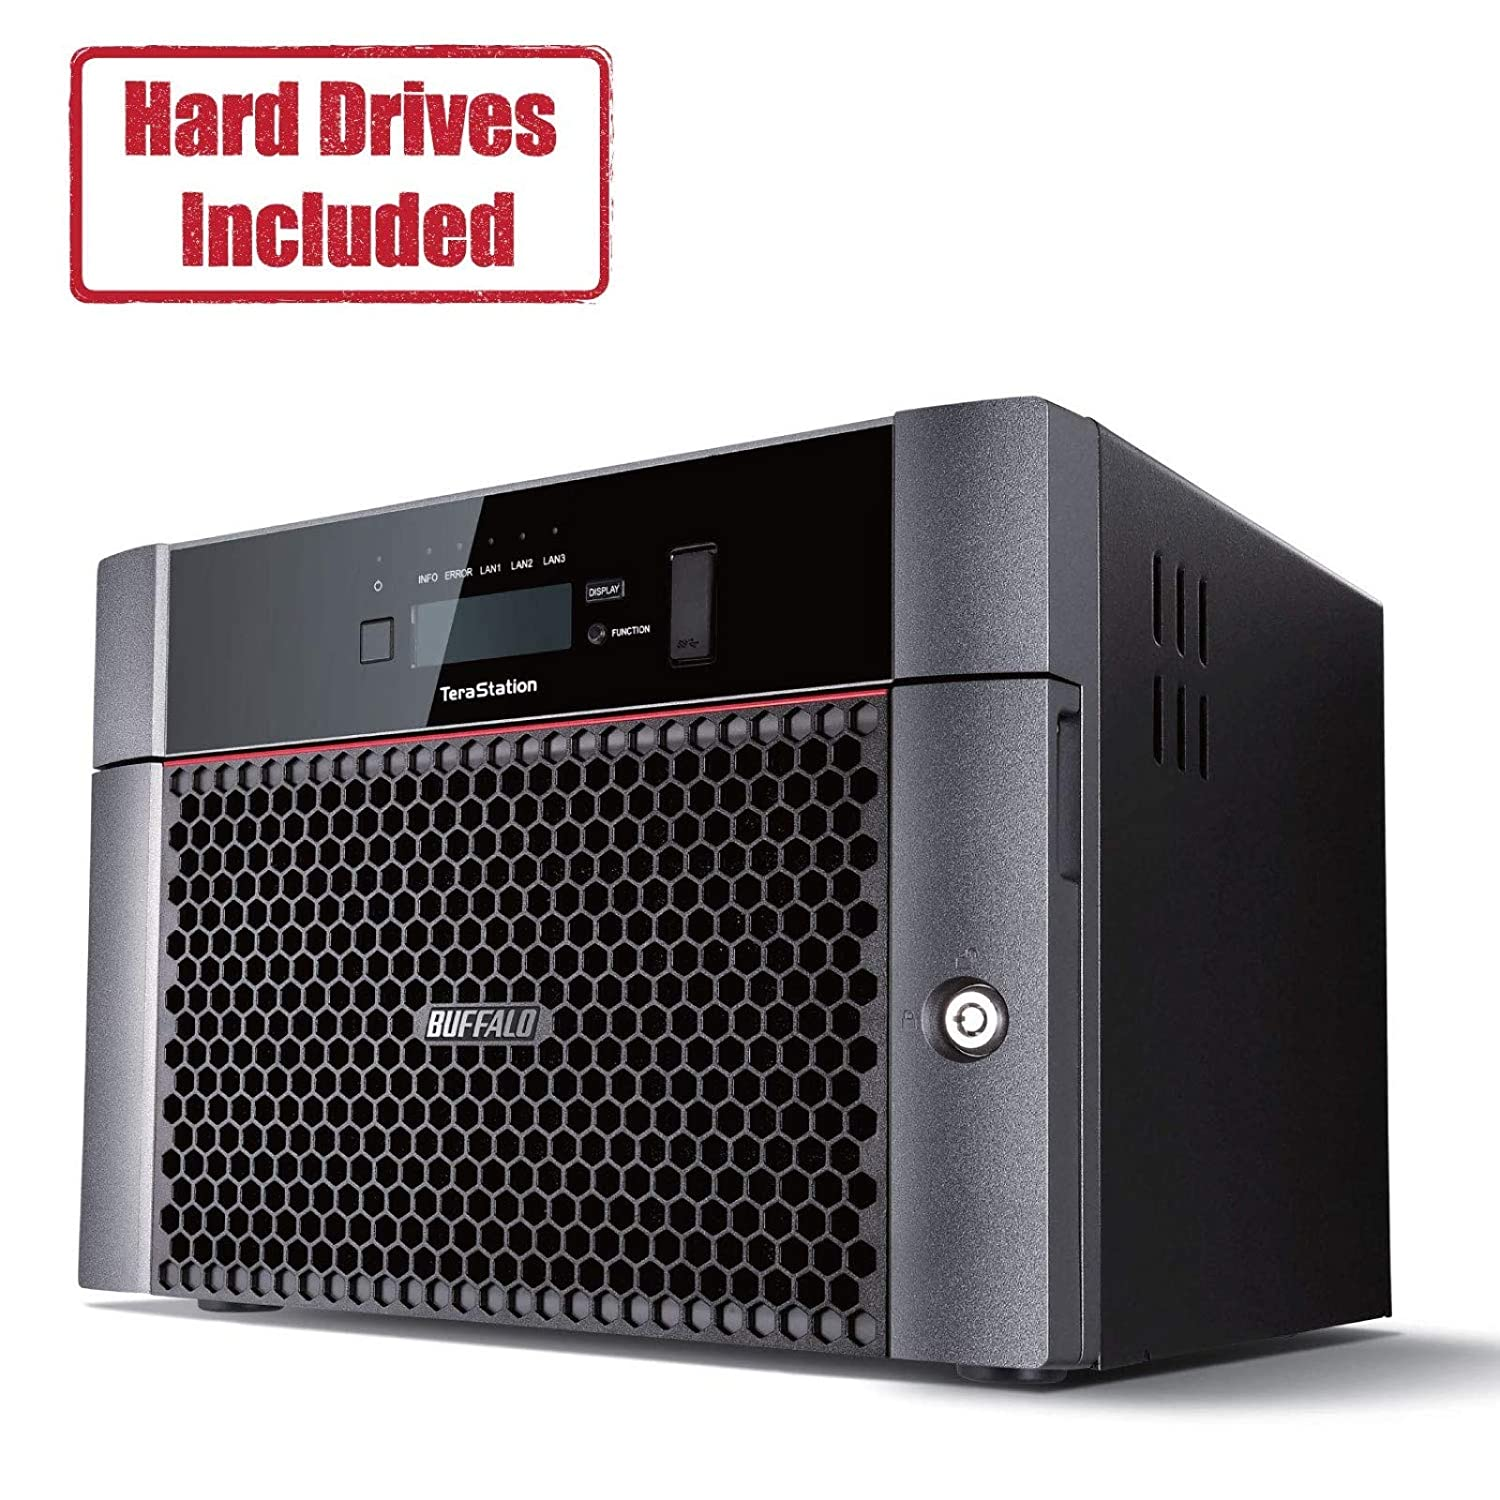 BUFFALO TeraStation 5810DN Desktop 32 TB NAS Hard Drives Included (4 X 8TB, 8 Bay)